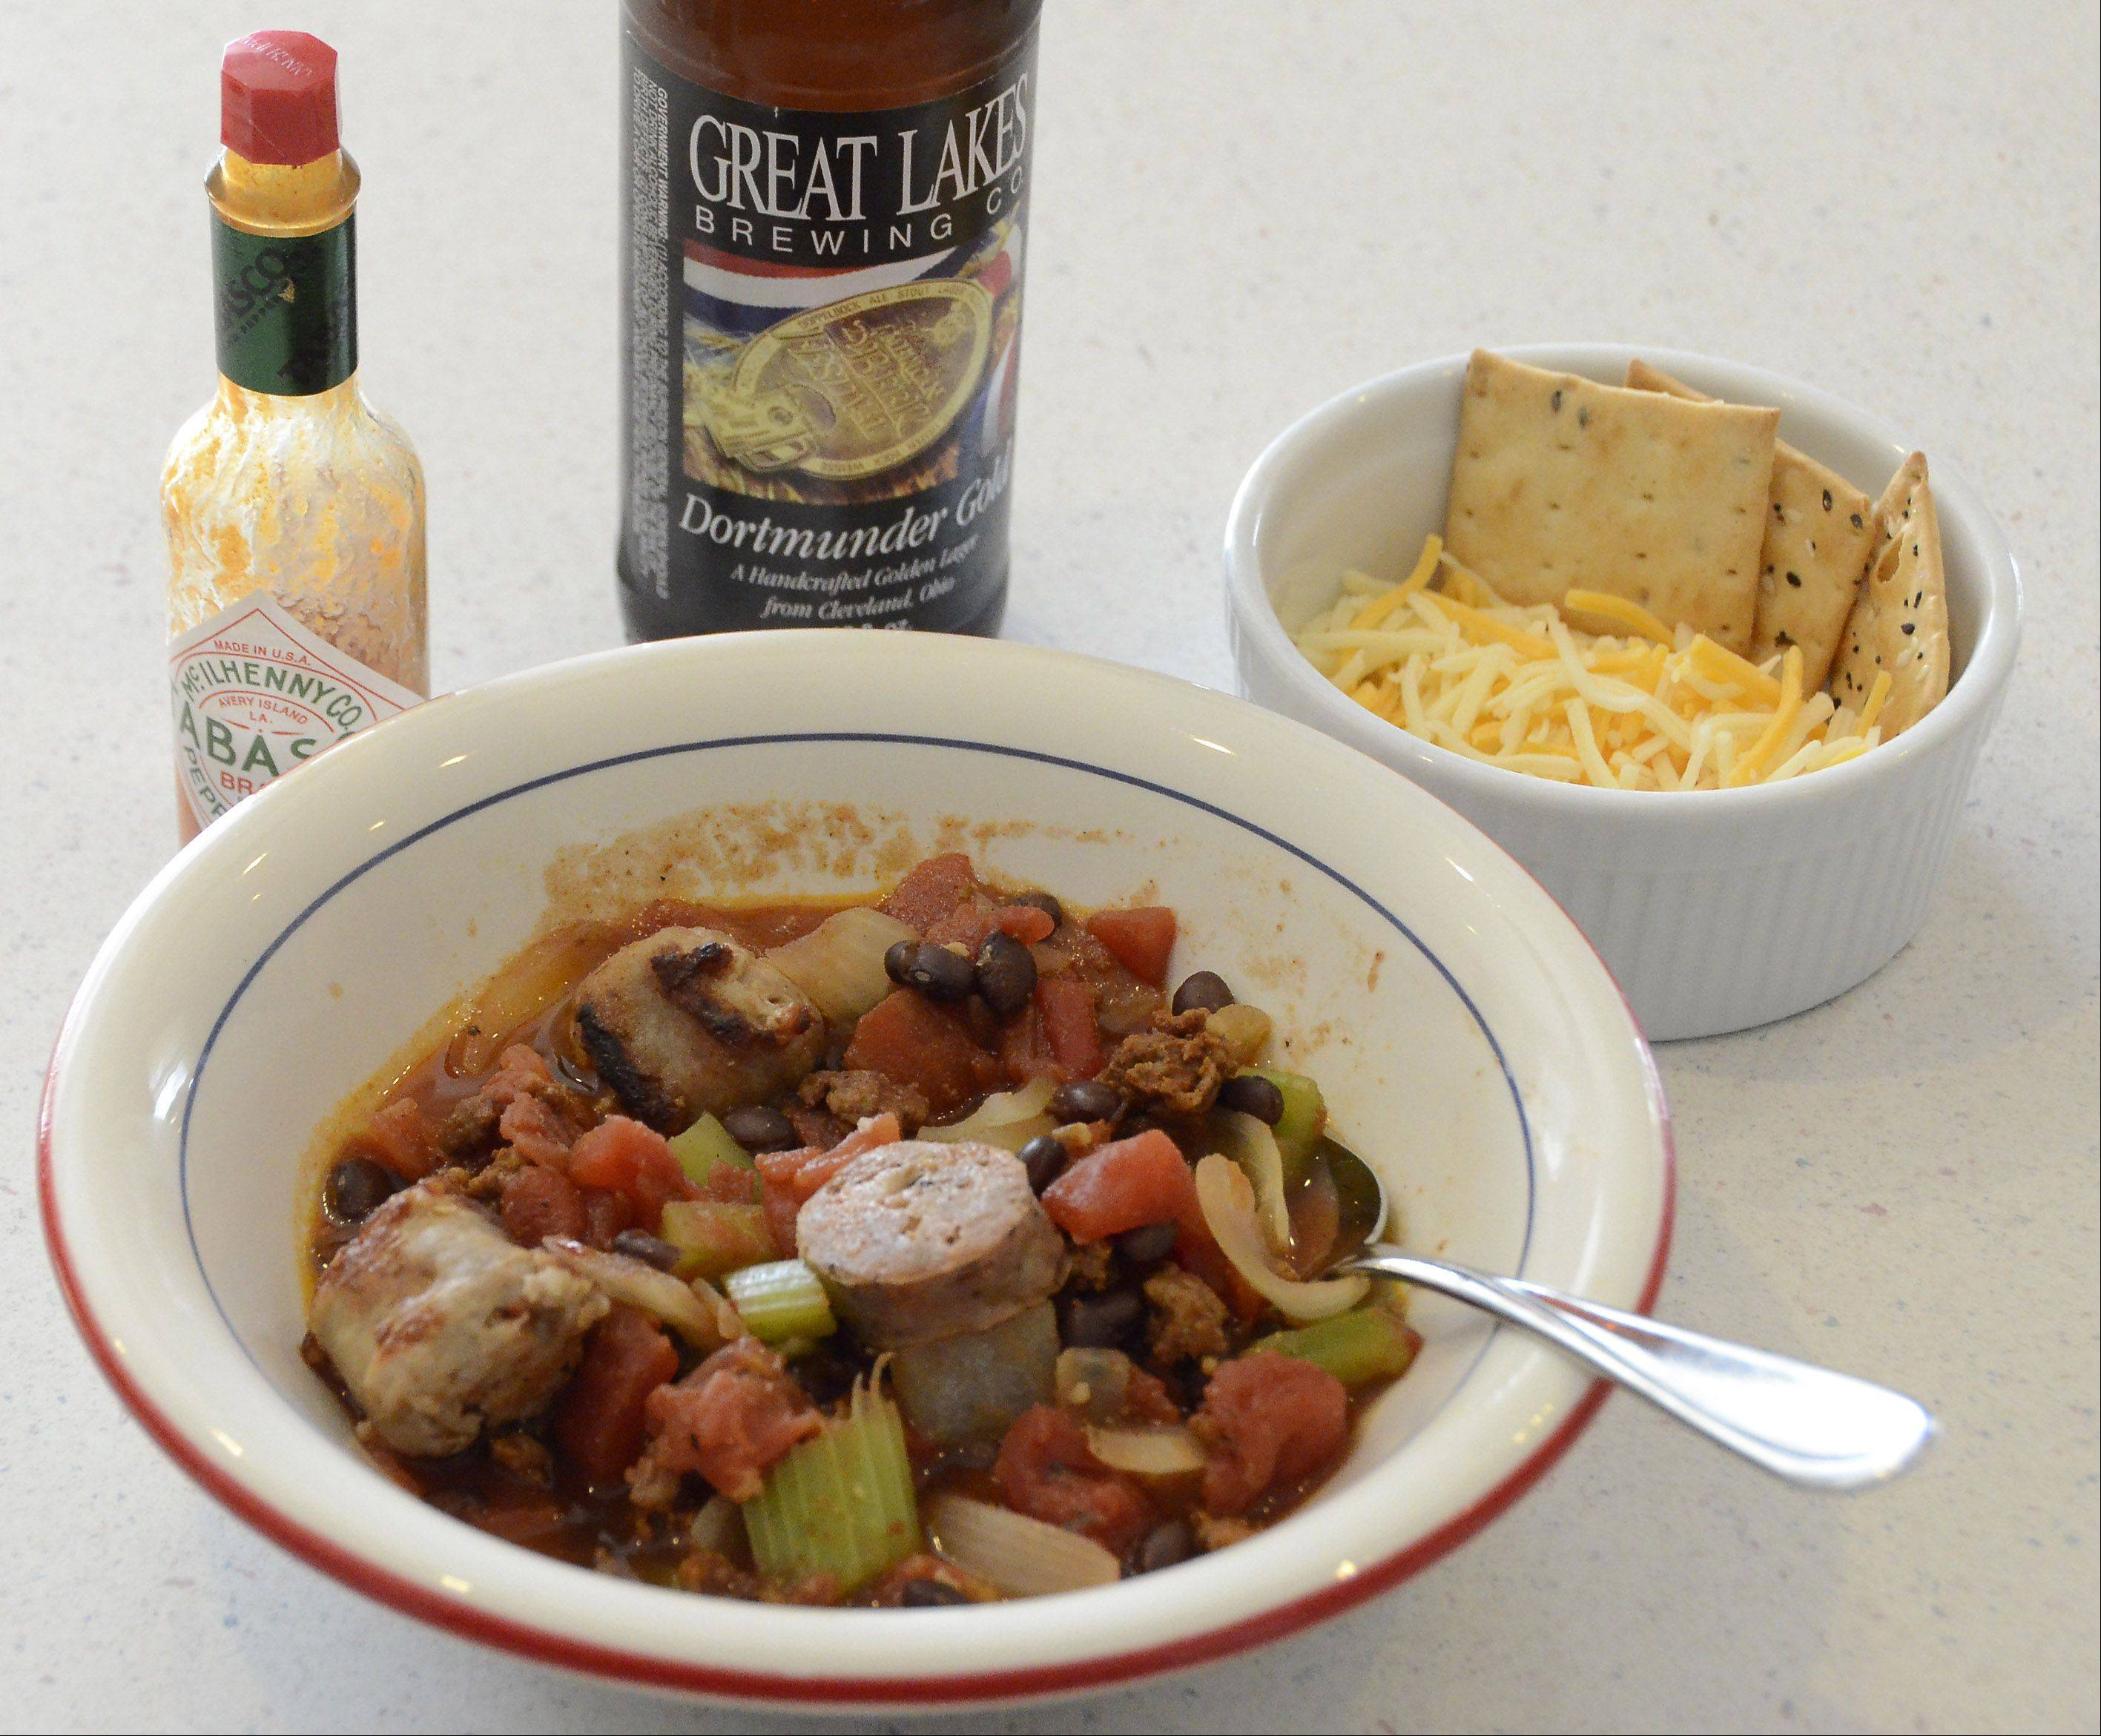 Sausage aficionado Kent Kleiva of Palatine uses three varities of sausage in his chili.